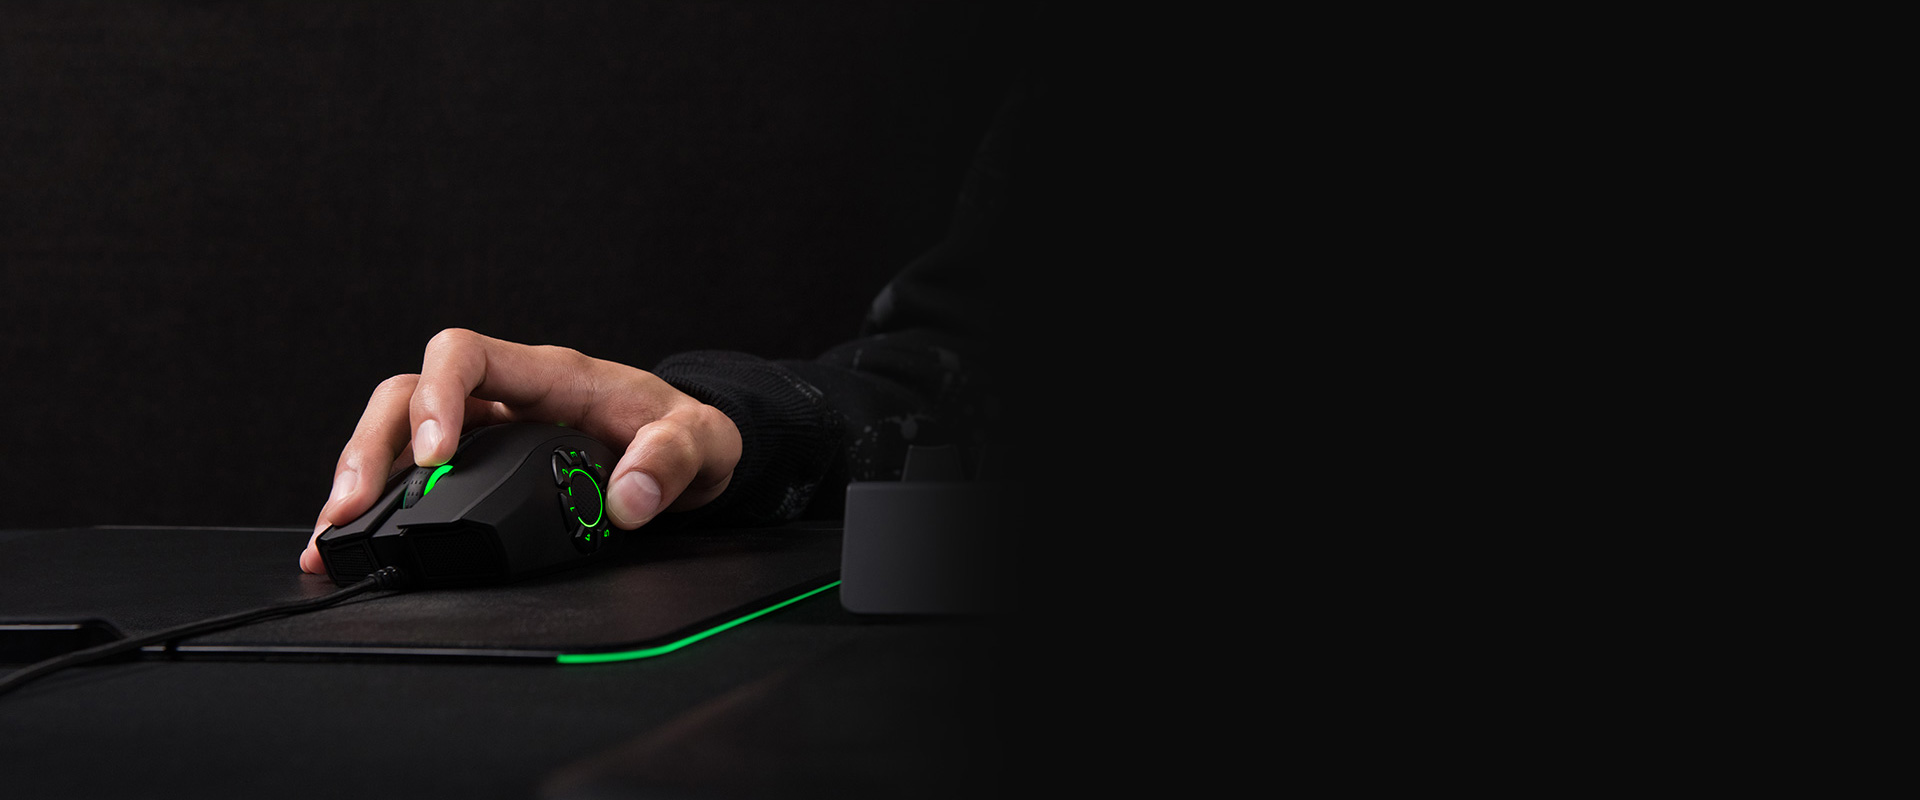 Image result for RAZER MOUSE NAGA HEX V2. PRE-CONFIGURED MOBA PROFILES FOR MAXIMUM IN-GAME EFFICIENCY